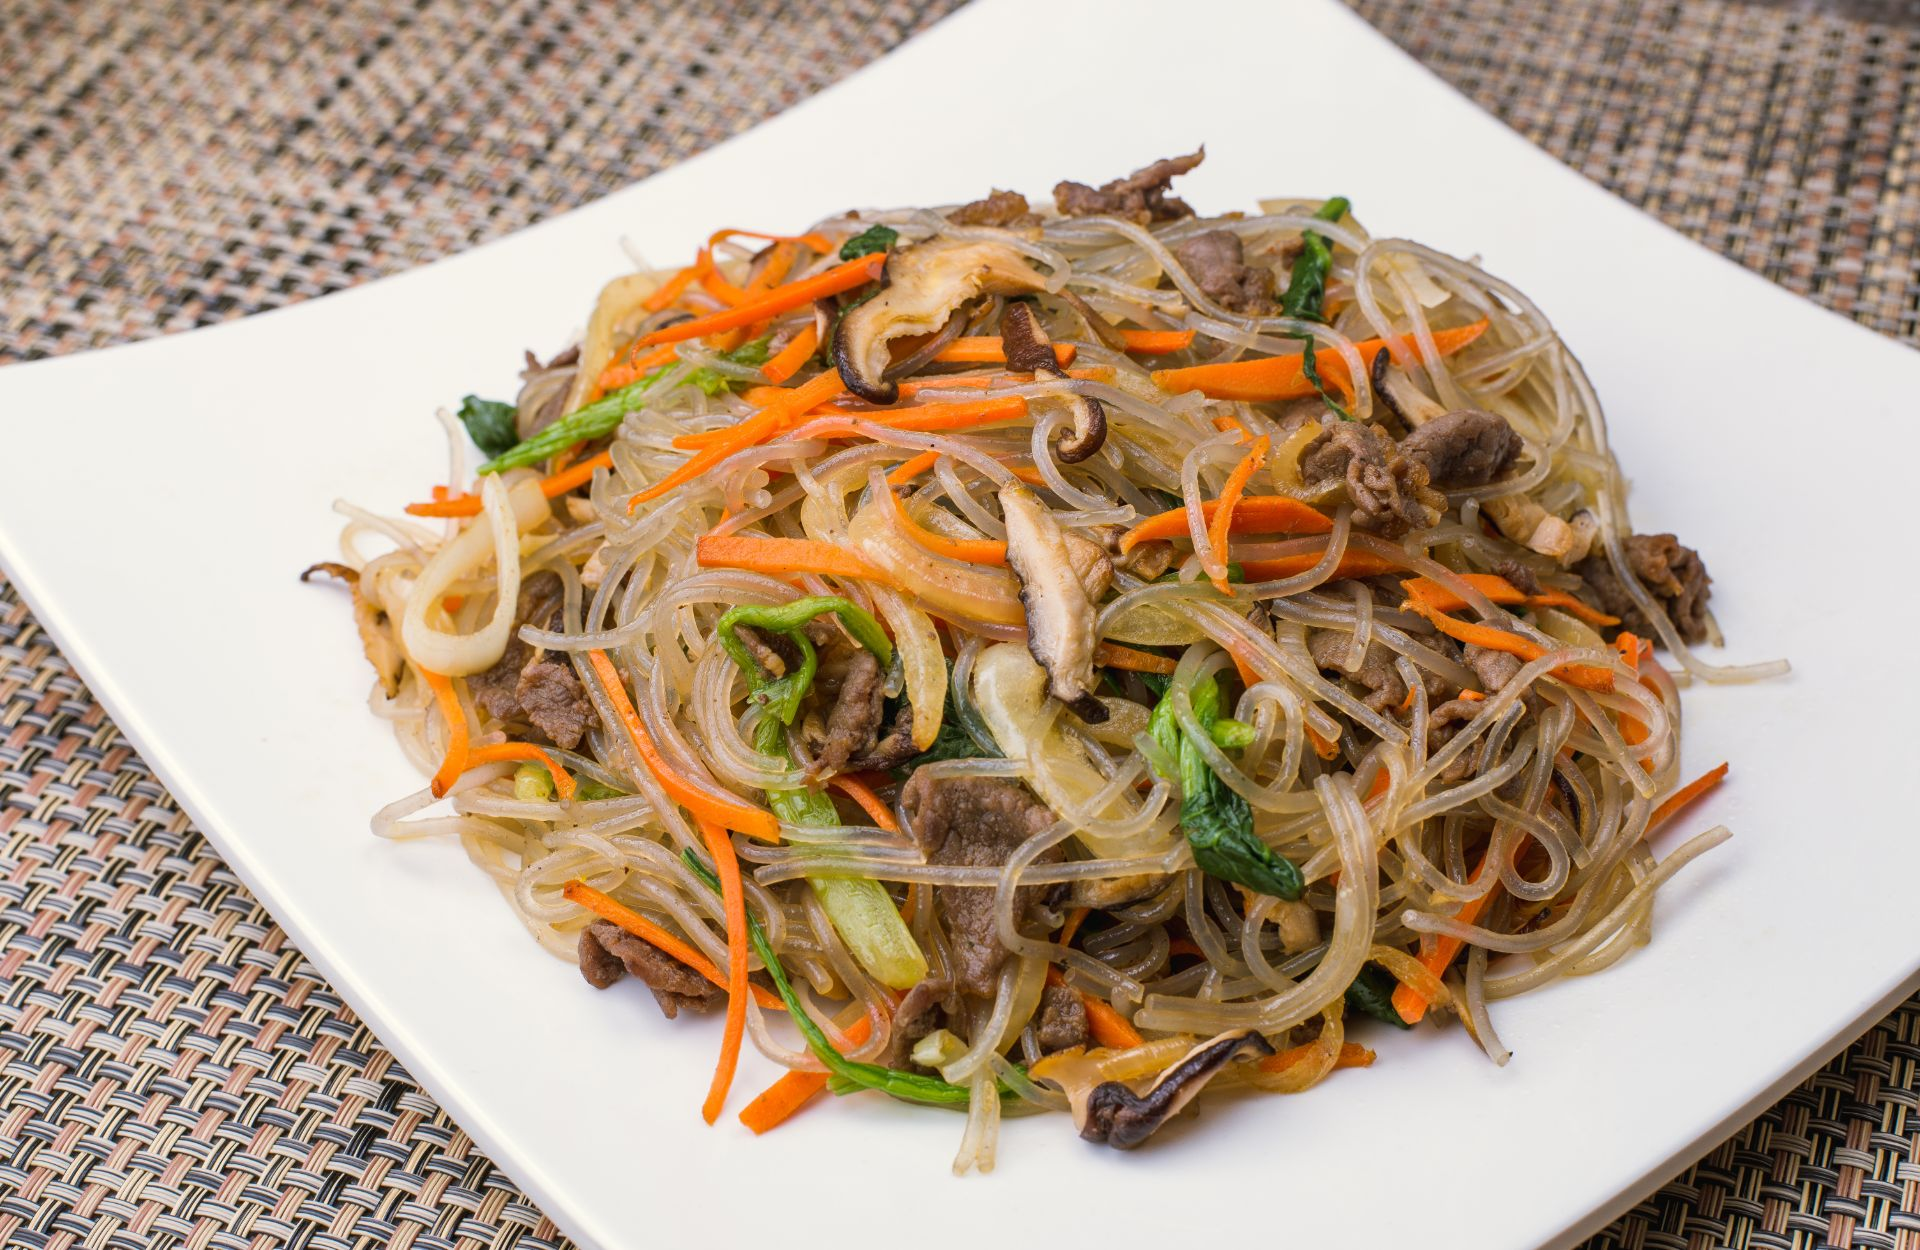 Korean traditional sweet potato noodle dish Japchae